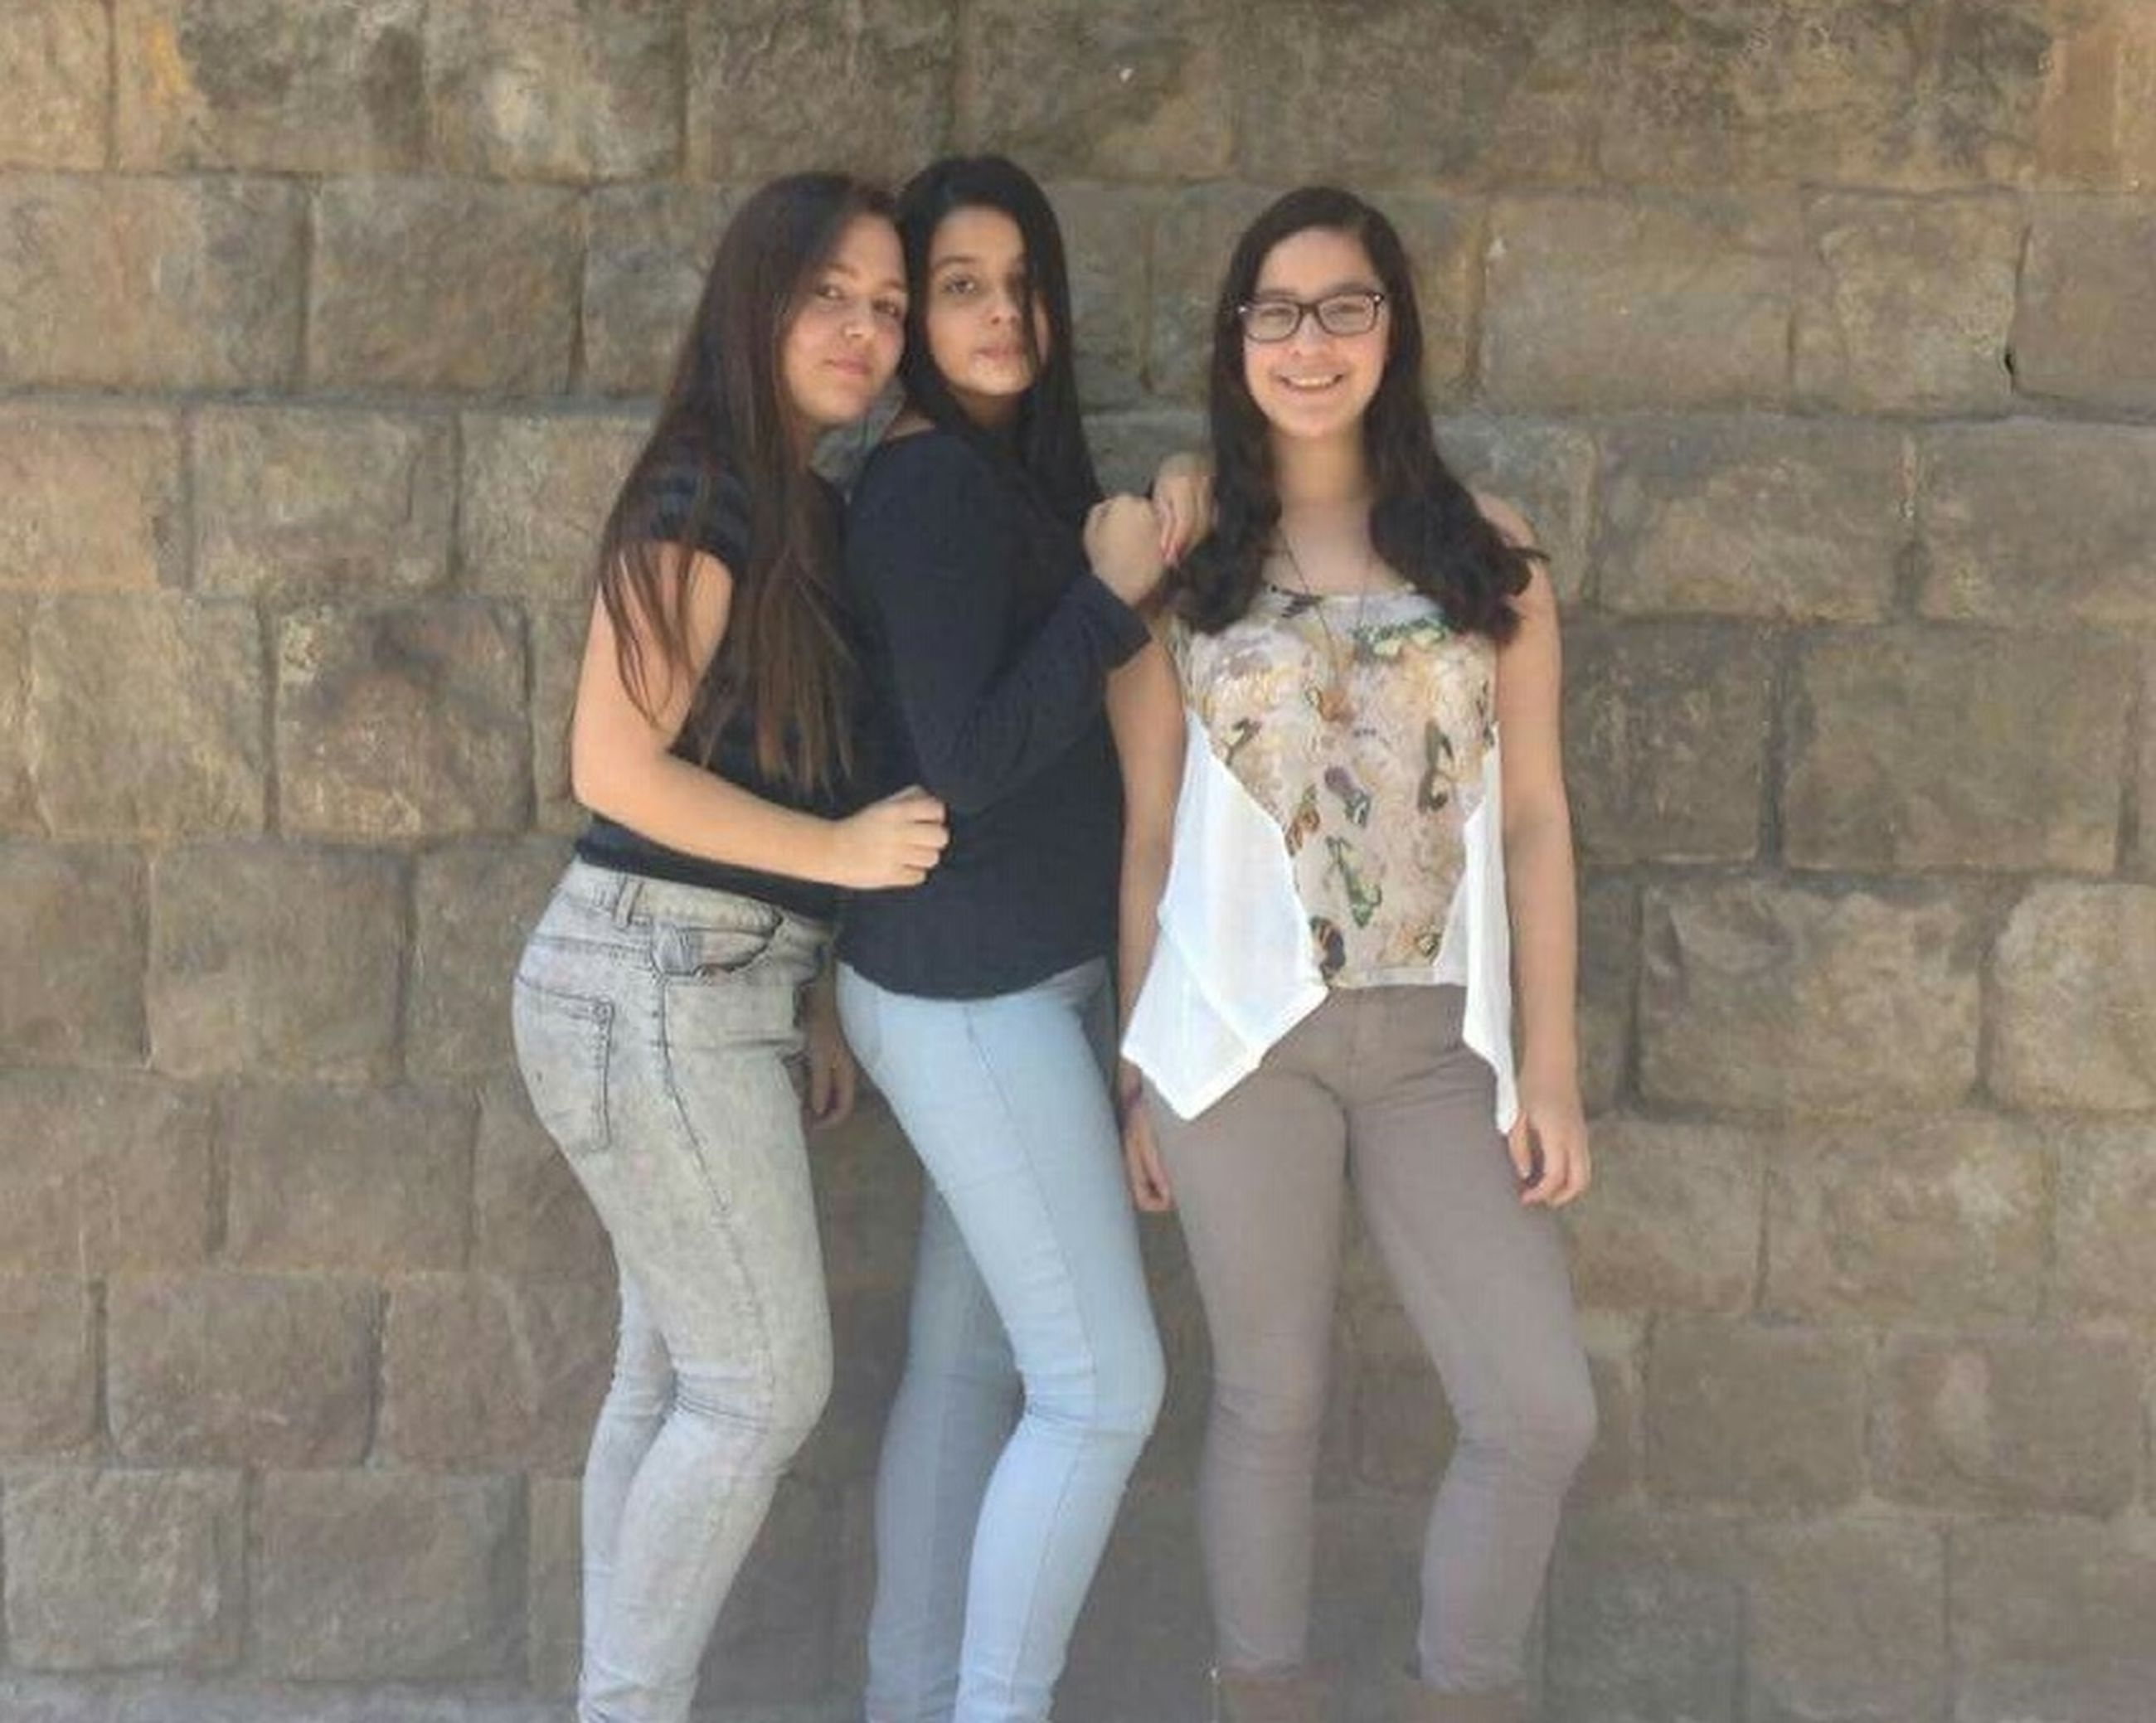 young adult, lifestyles, person, young women, casual clothing, leisure activity, front view, standing, looking at camera, wall - building feature, portrait, three quarter length, togetherness, smiling, bonding, full length